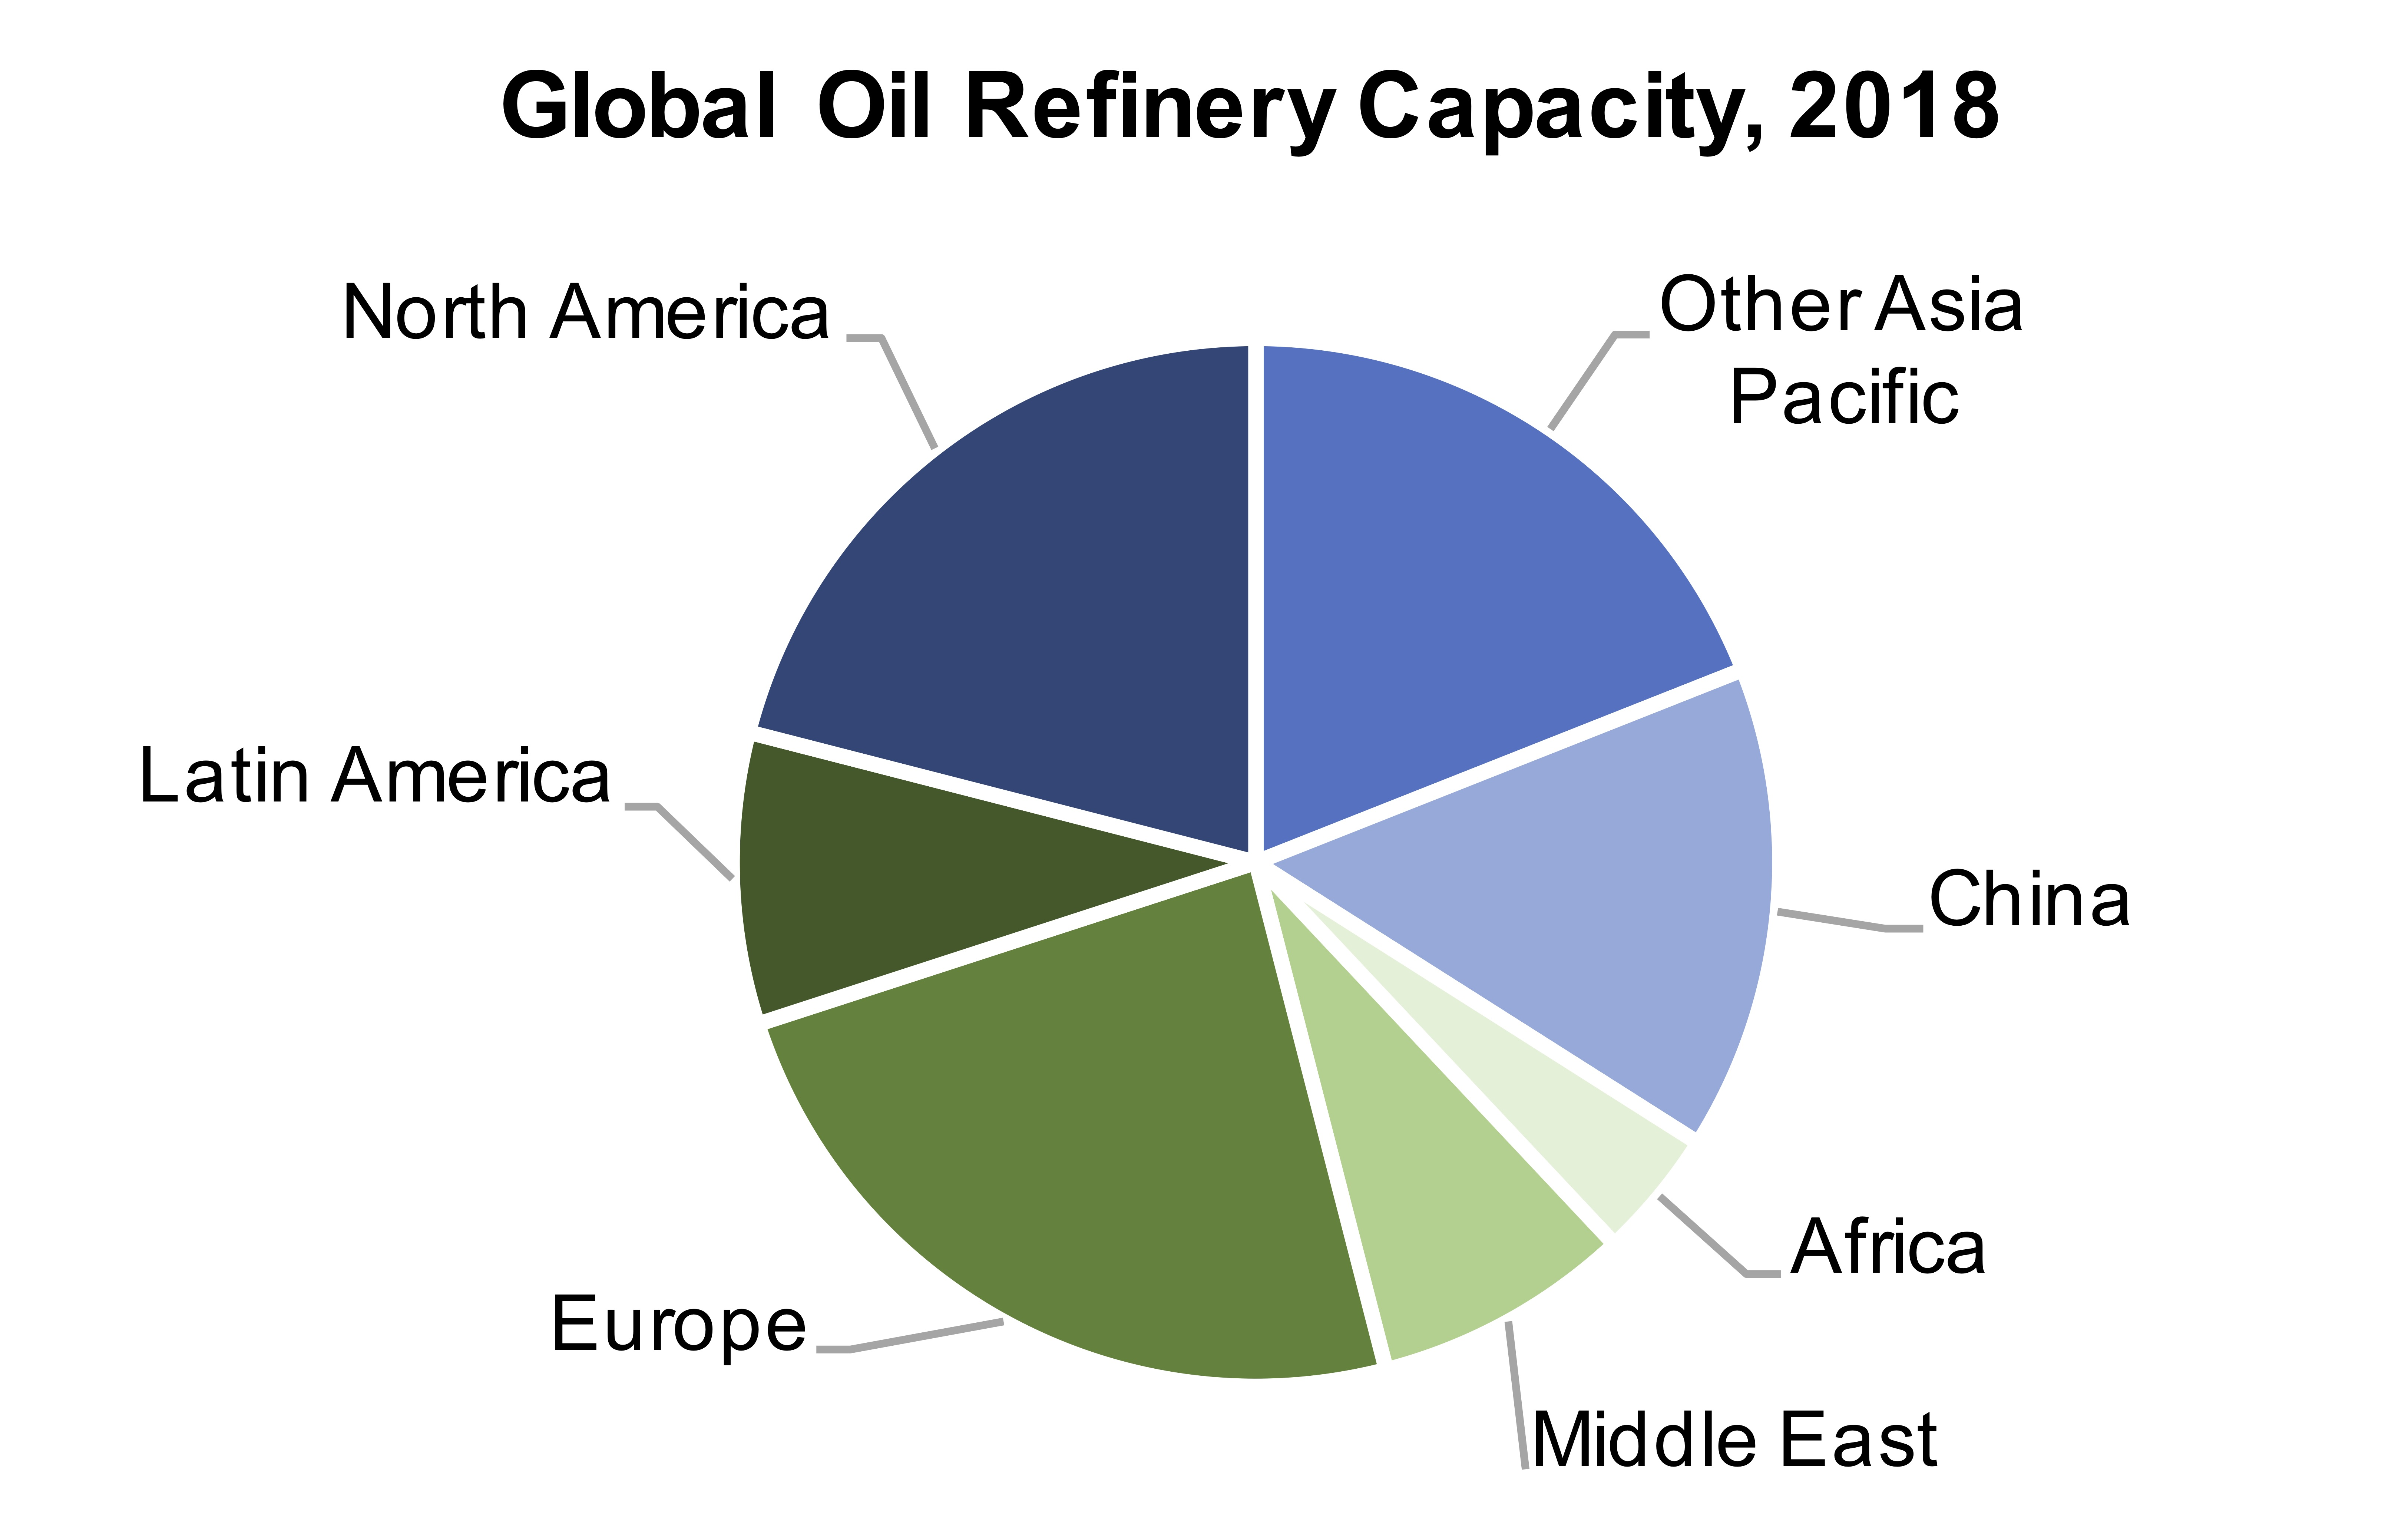 2019 Analytical Instrumentation Demand for Oil & Gas Grows